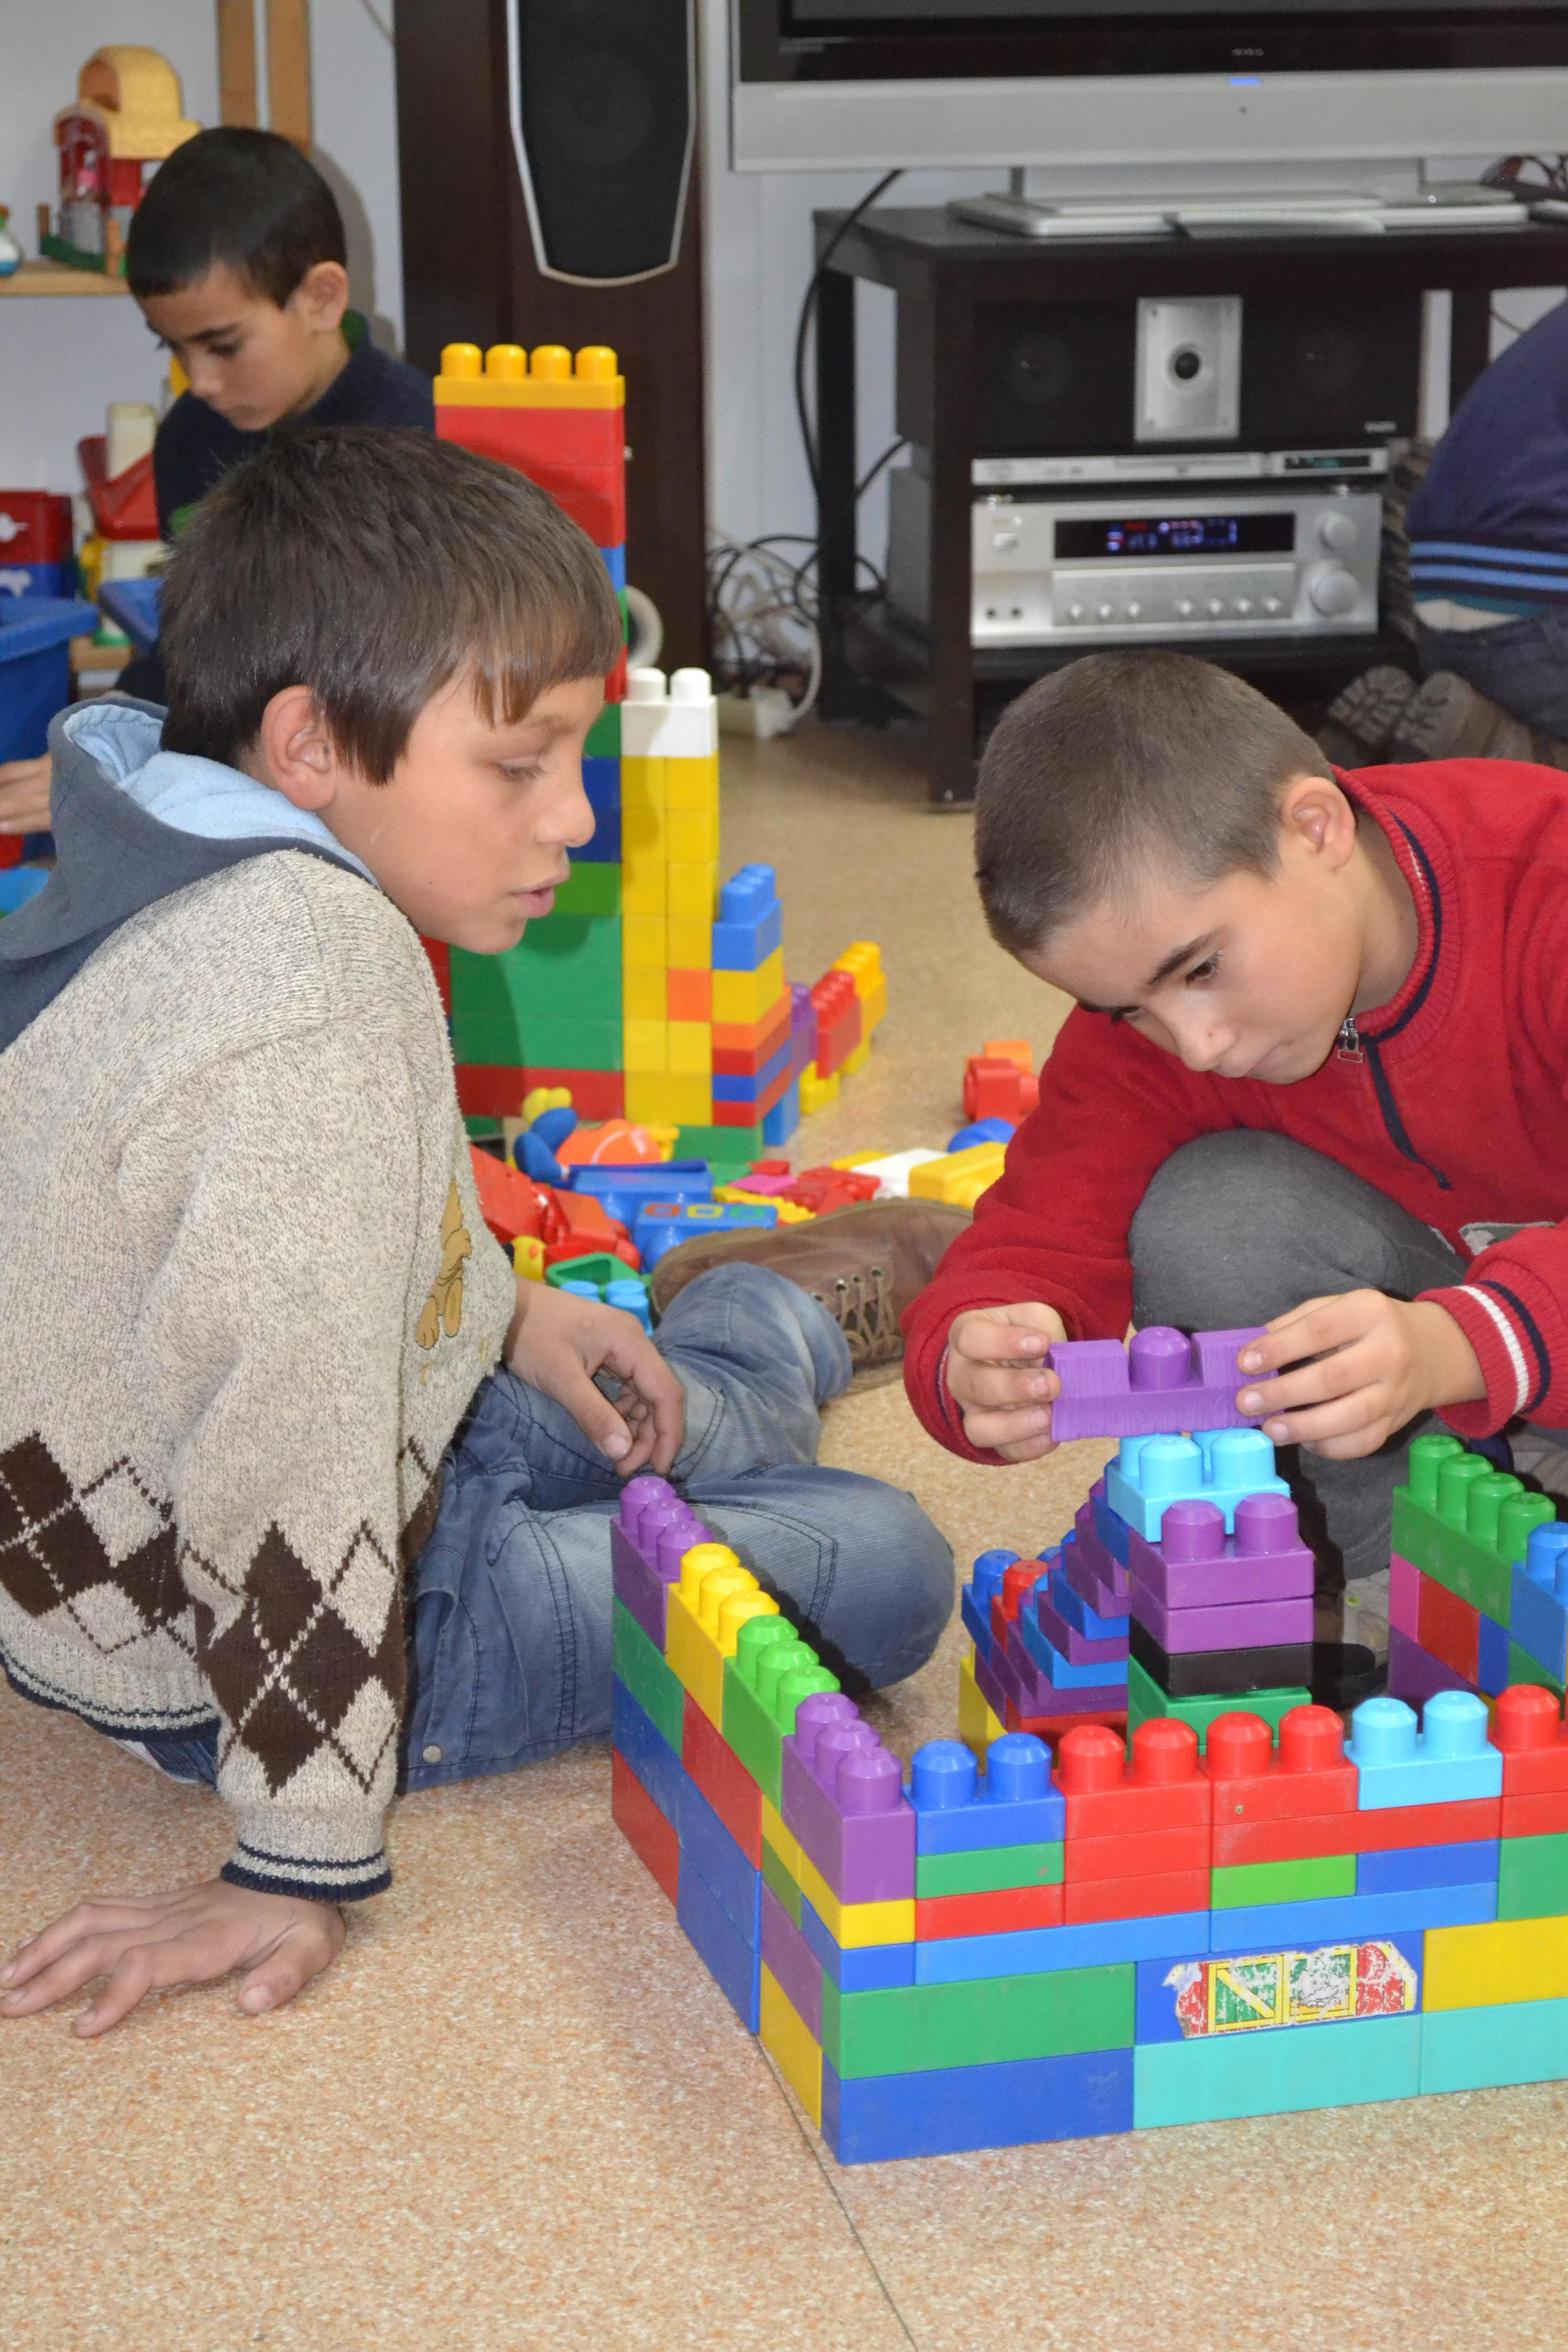 Children play with toys during their break at a Childcare placement in Romania